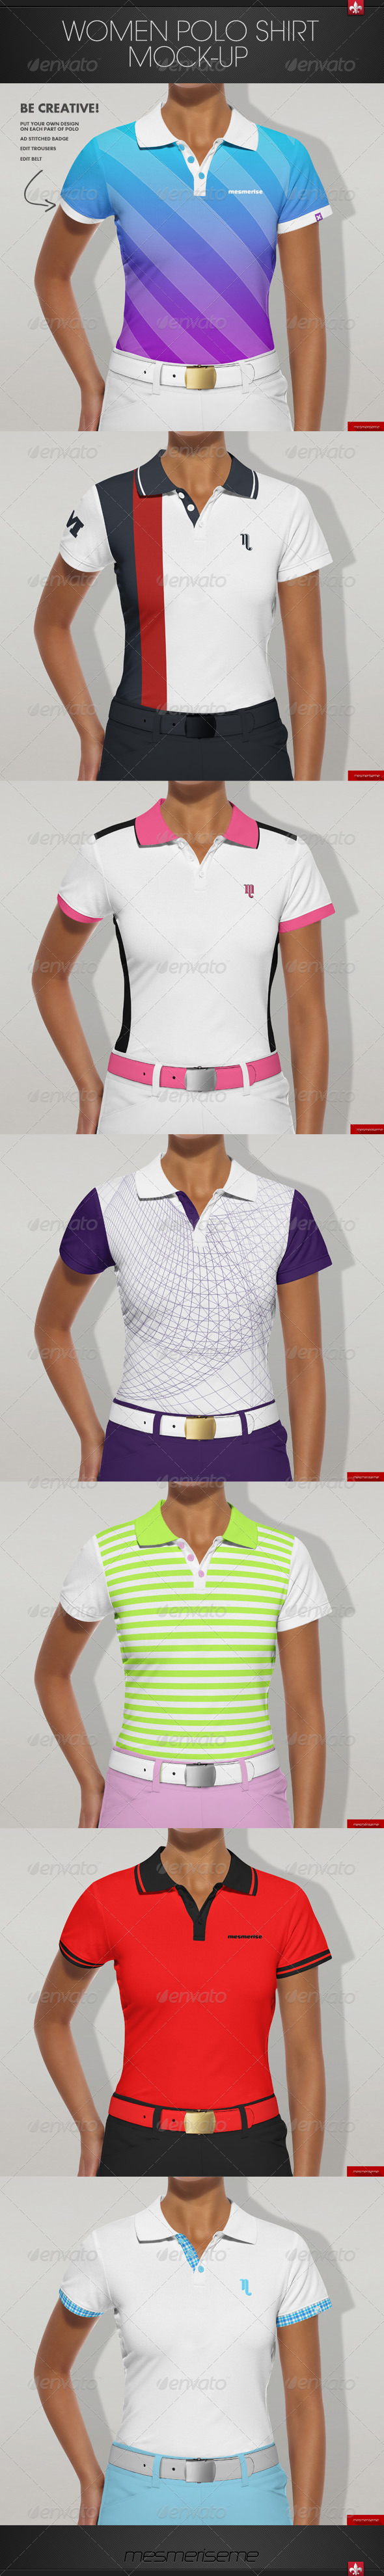 GraphicRiver Women Polo Shirt Mock-up 7352403